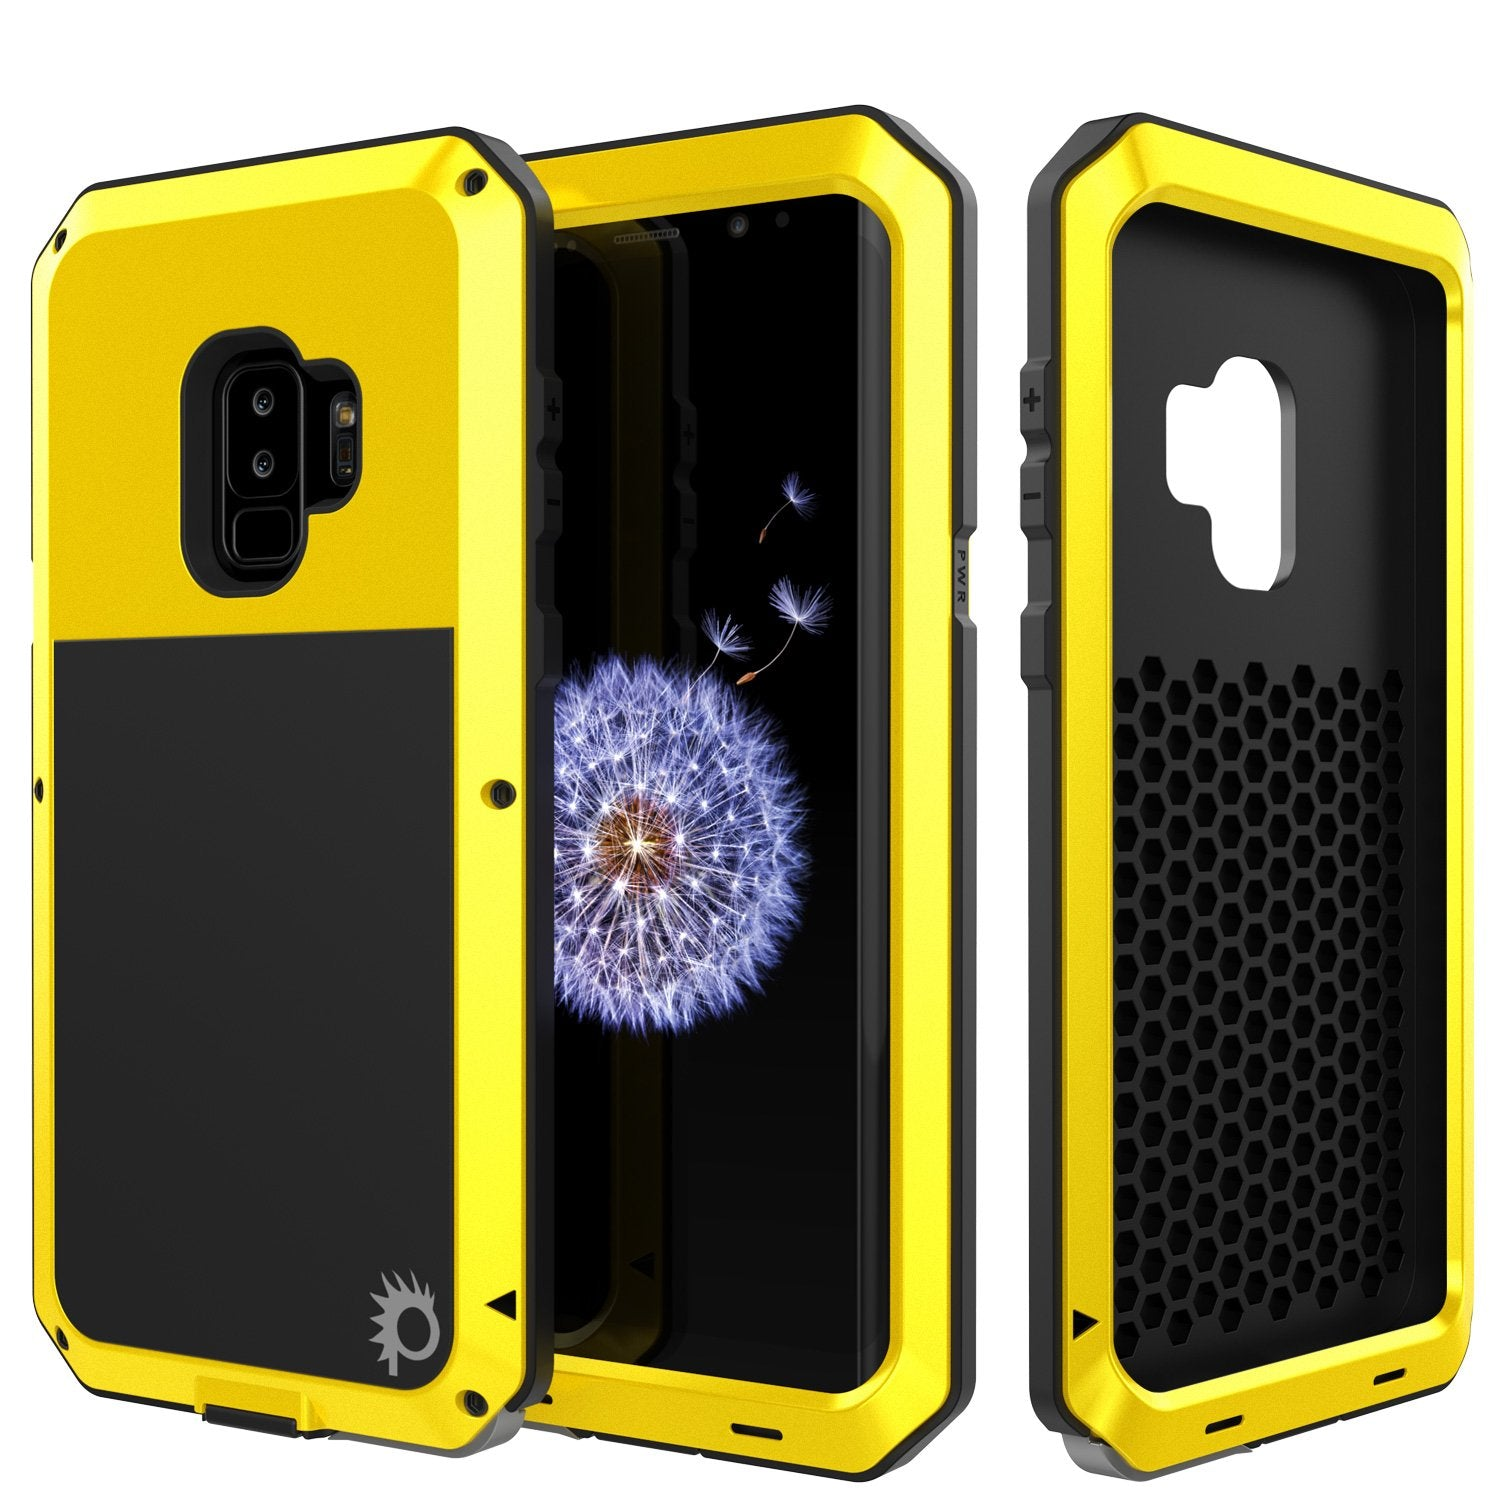 Galaxy S9 Plus Metal PunkCase Heavy Duty Military Grade Rugged, Neon